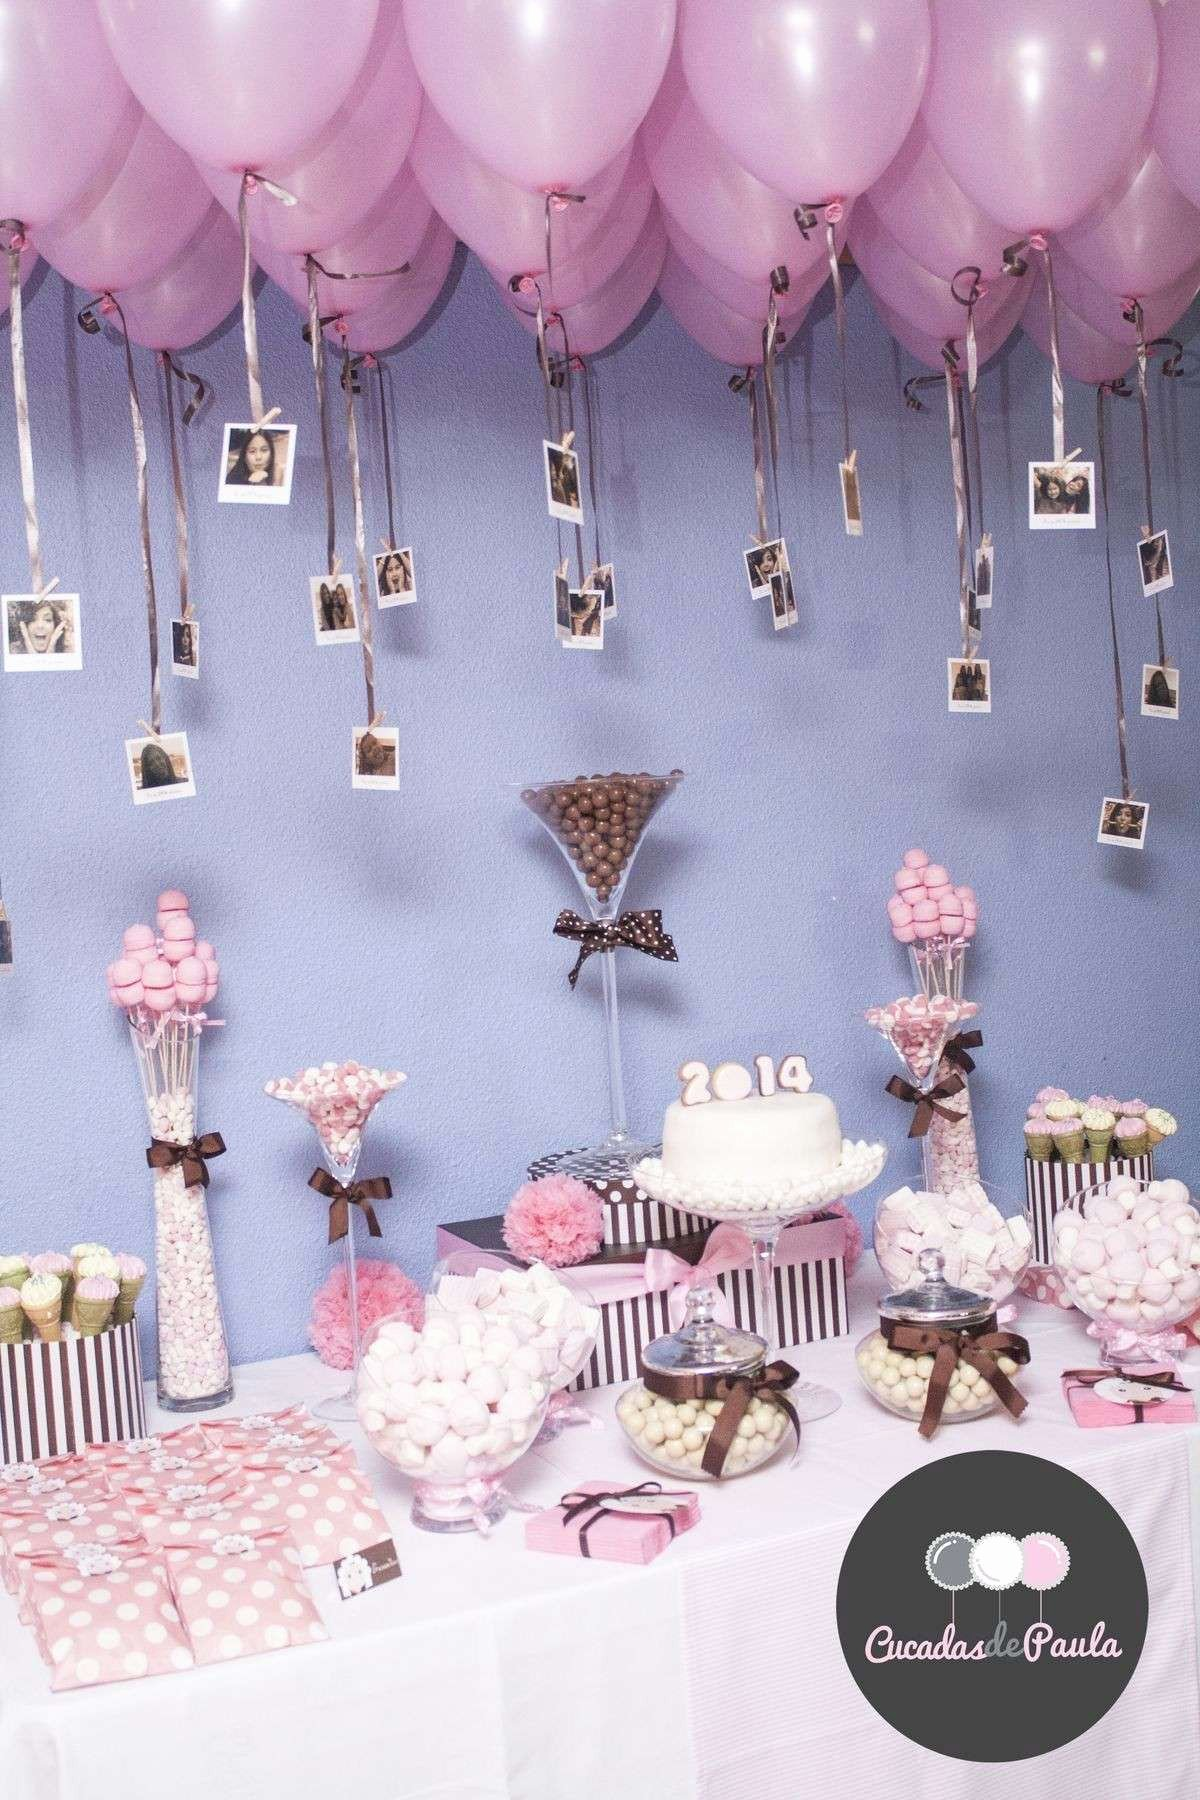 first birthday decoration ideas at home for girl 1st birthday decoration ideas at home 32 awesome unique first birthday party ideas 1st birthday